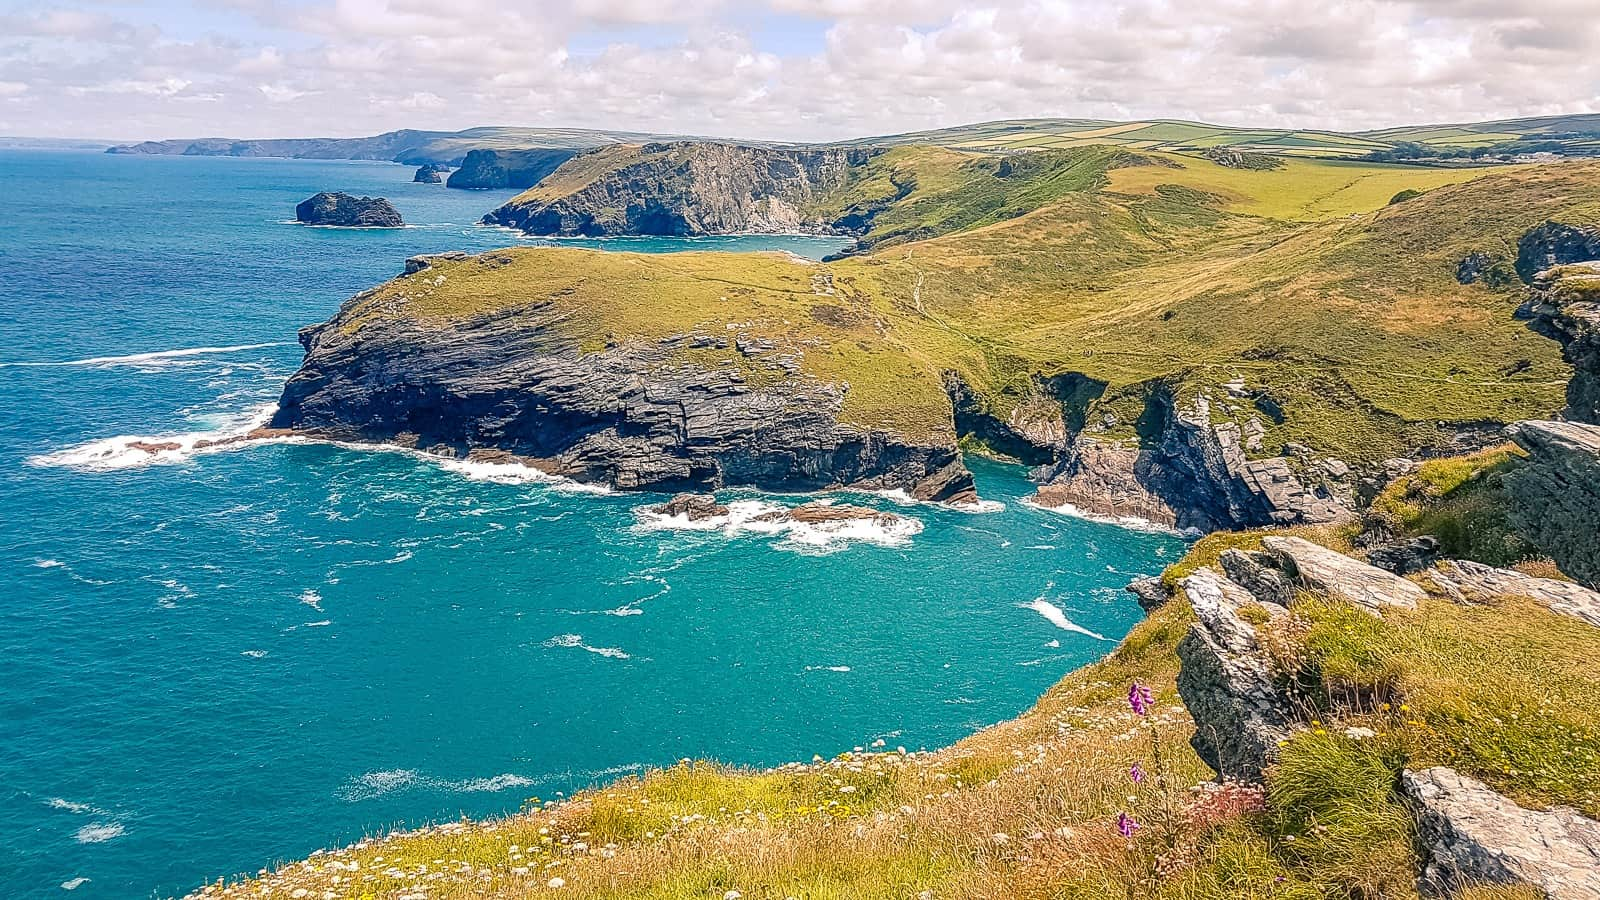 Looking for a perfect Cornish day trip? Or to soak up some of the finest and most dramatic seaviews in the county? Then Tintagel, perched on the cliffs of the north Cornwall coast, is just what you're looking for. Our guide will show you exactly how to spend a day in Tintagel (or even longer), alongside our recommendations for things to do in Tintagel, where to eat and where to stay. It really is the perfect Cornish day trip! #Cornwall #Tintagel Read the full article here: //mowgli-adventures.com/things-to-do-in-tintagel-day-trip/